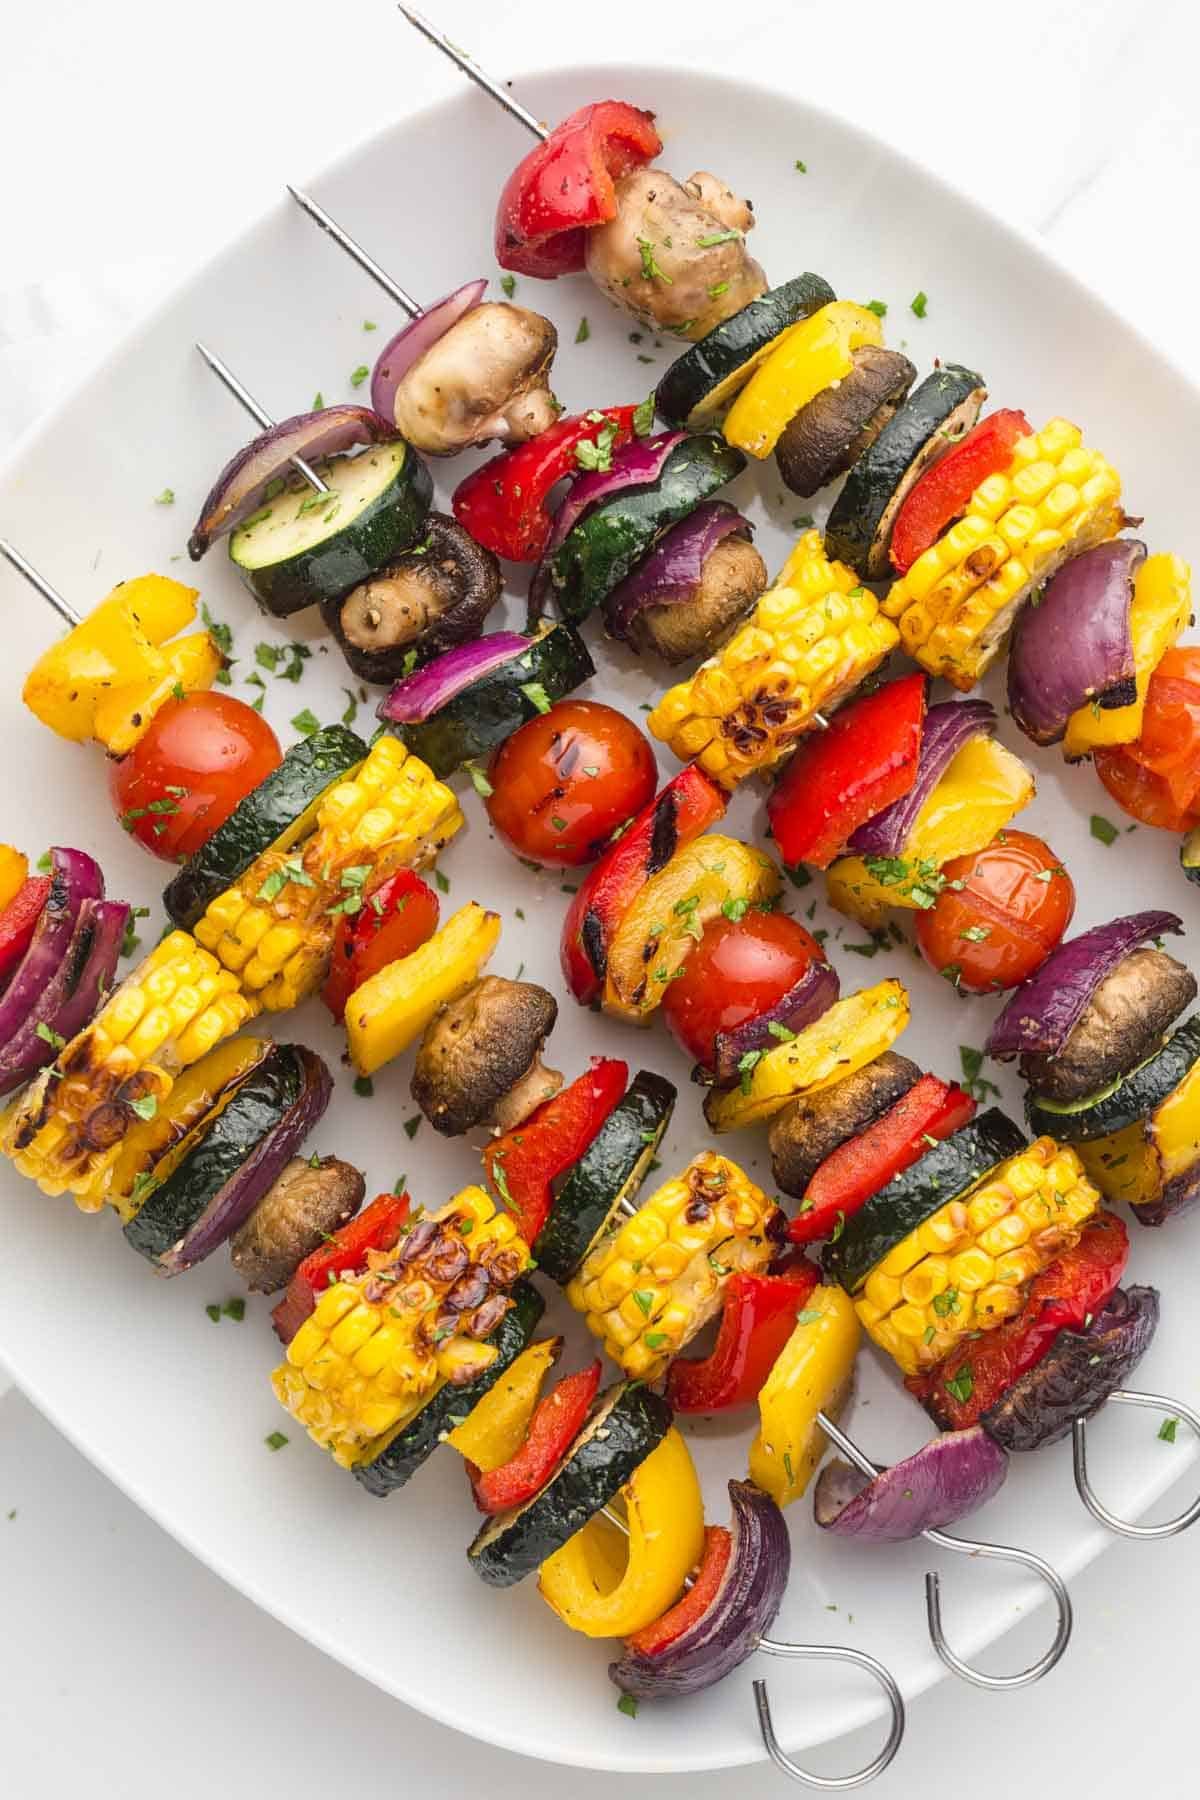 5 veggie kabobs on skewers, served on a white square plate